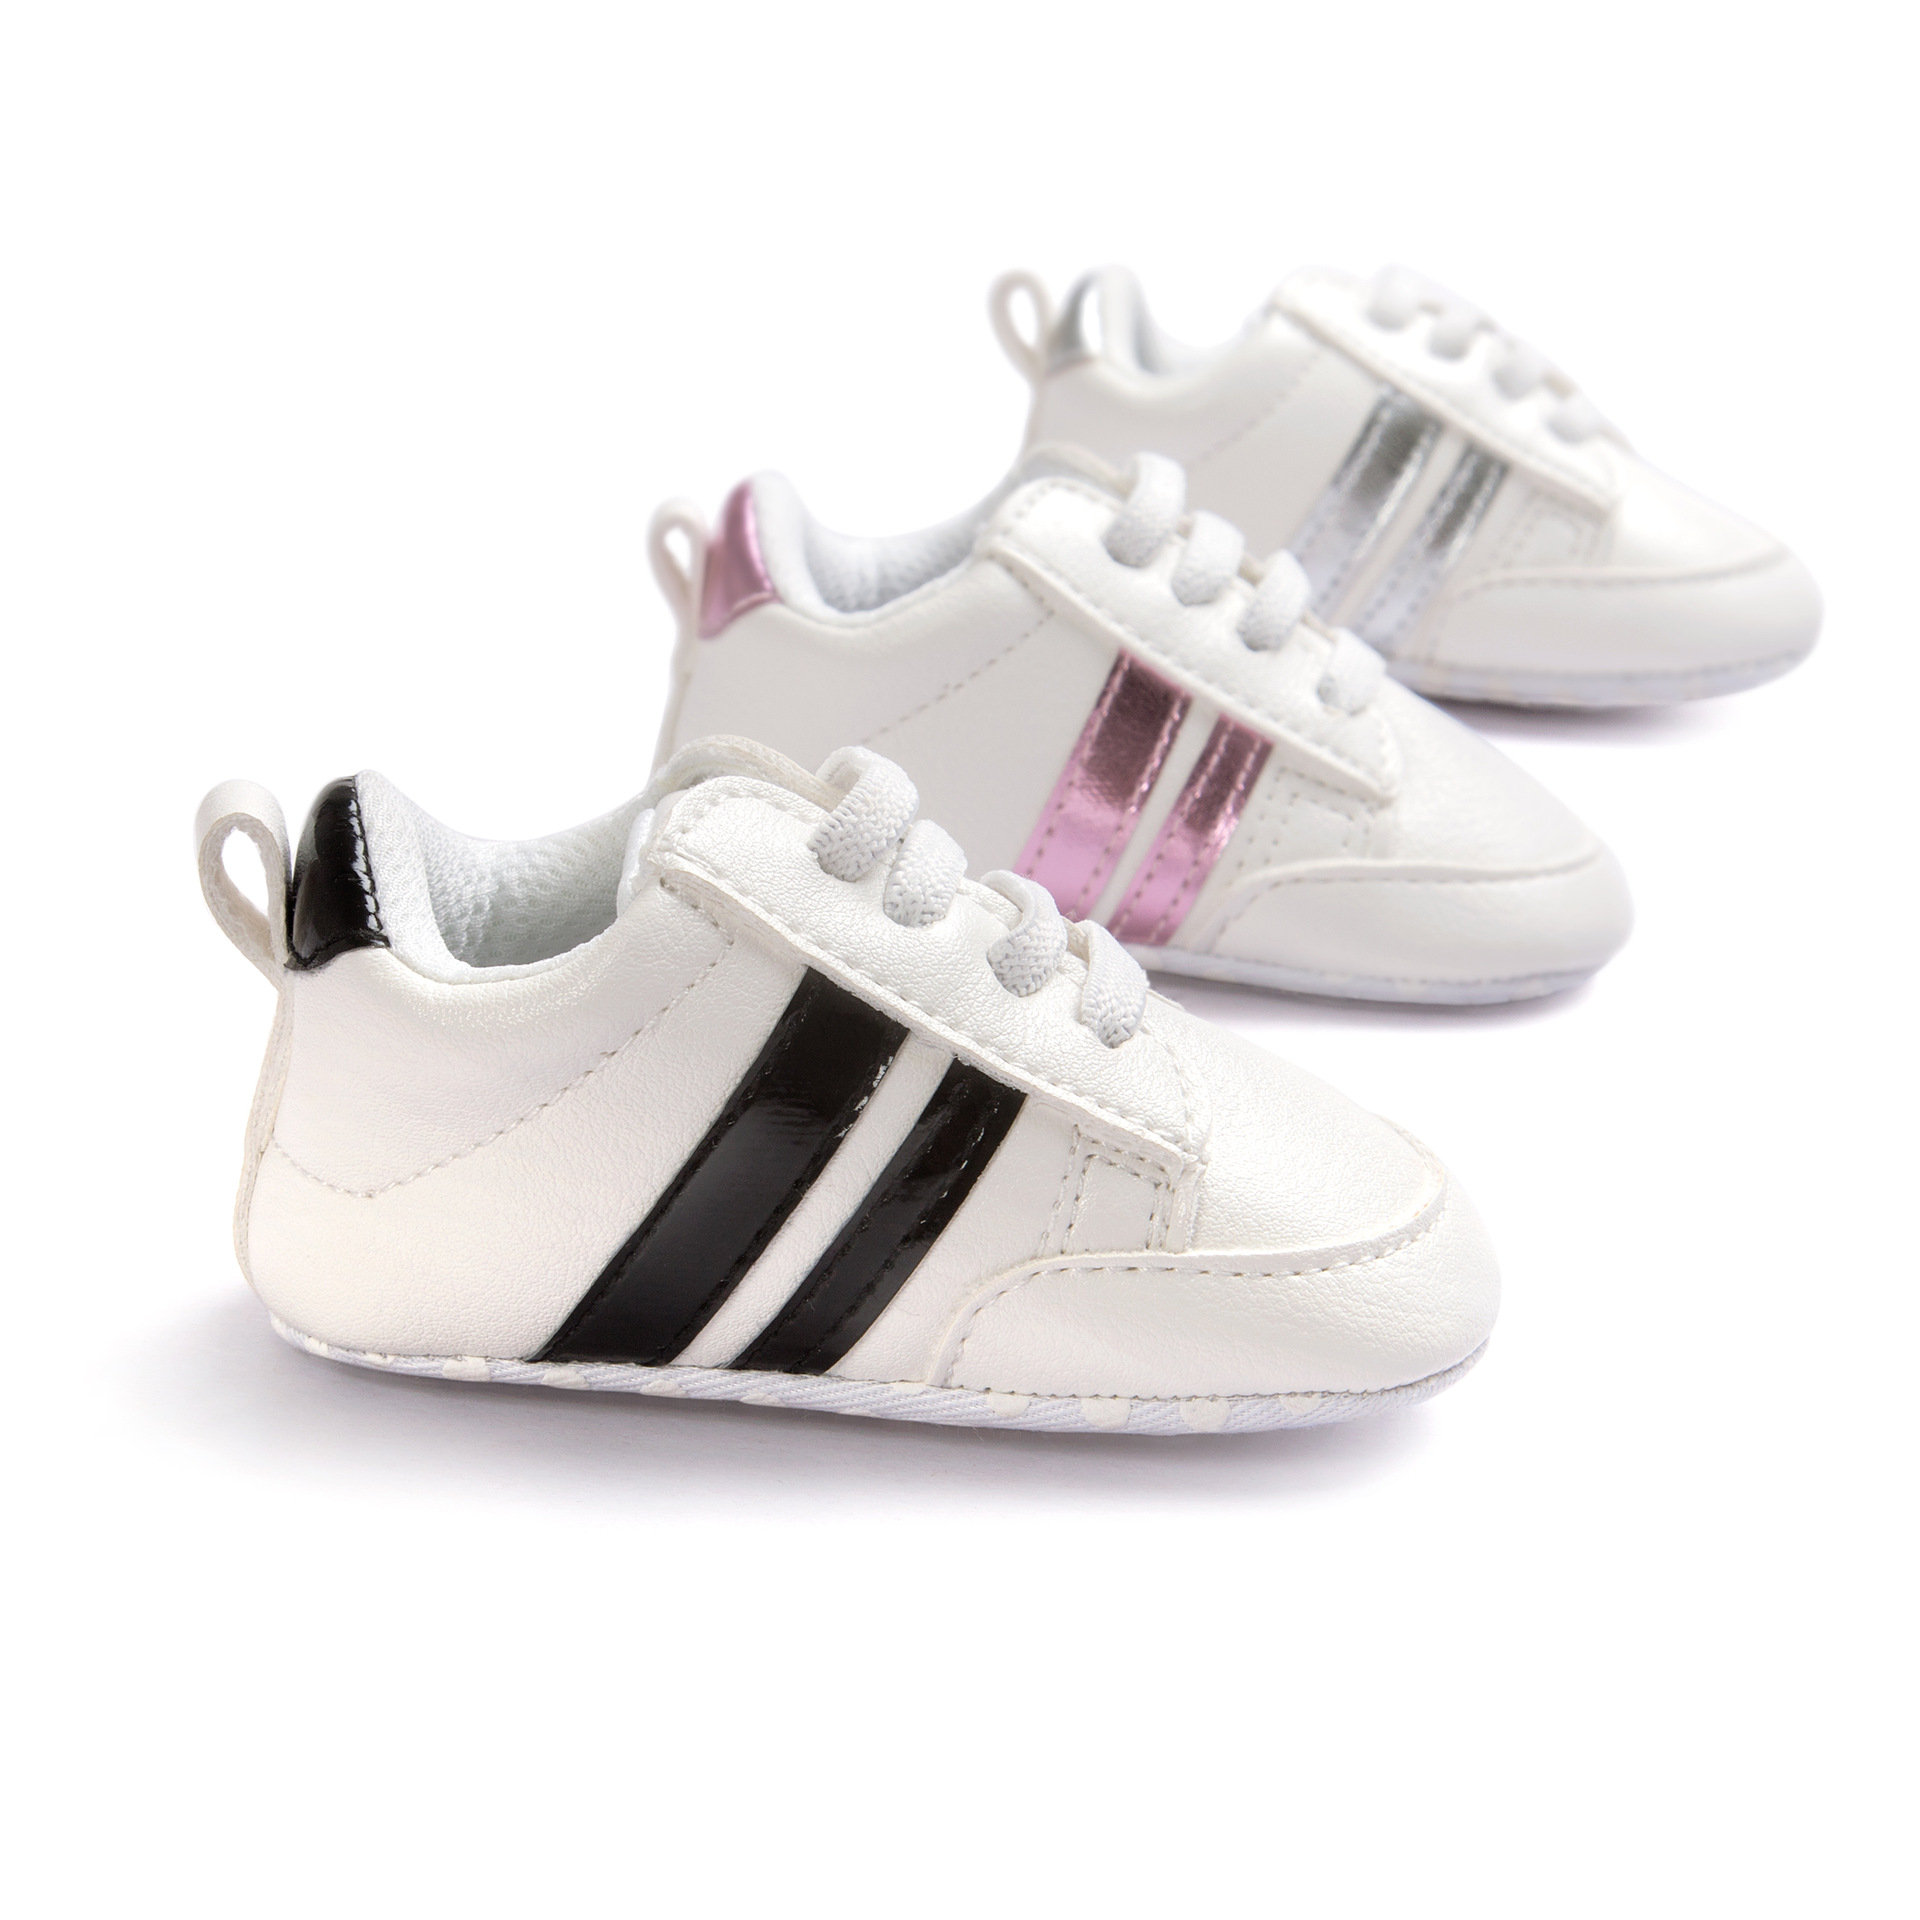 2017 ROMIRUS Soft Bottom Fashion Sneakers Baby Boys Girls First Walkers Baby Indoor Non slop Toddler